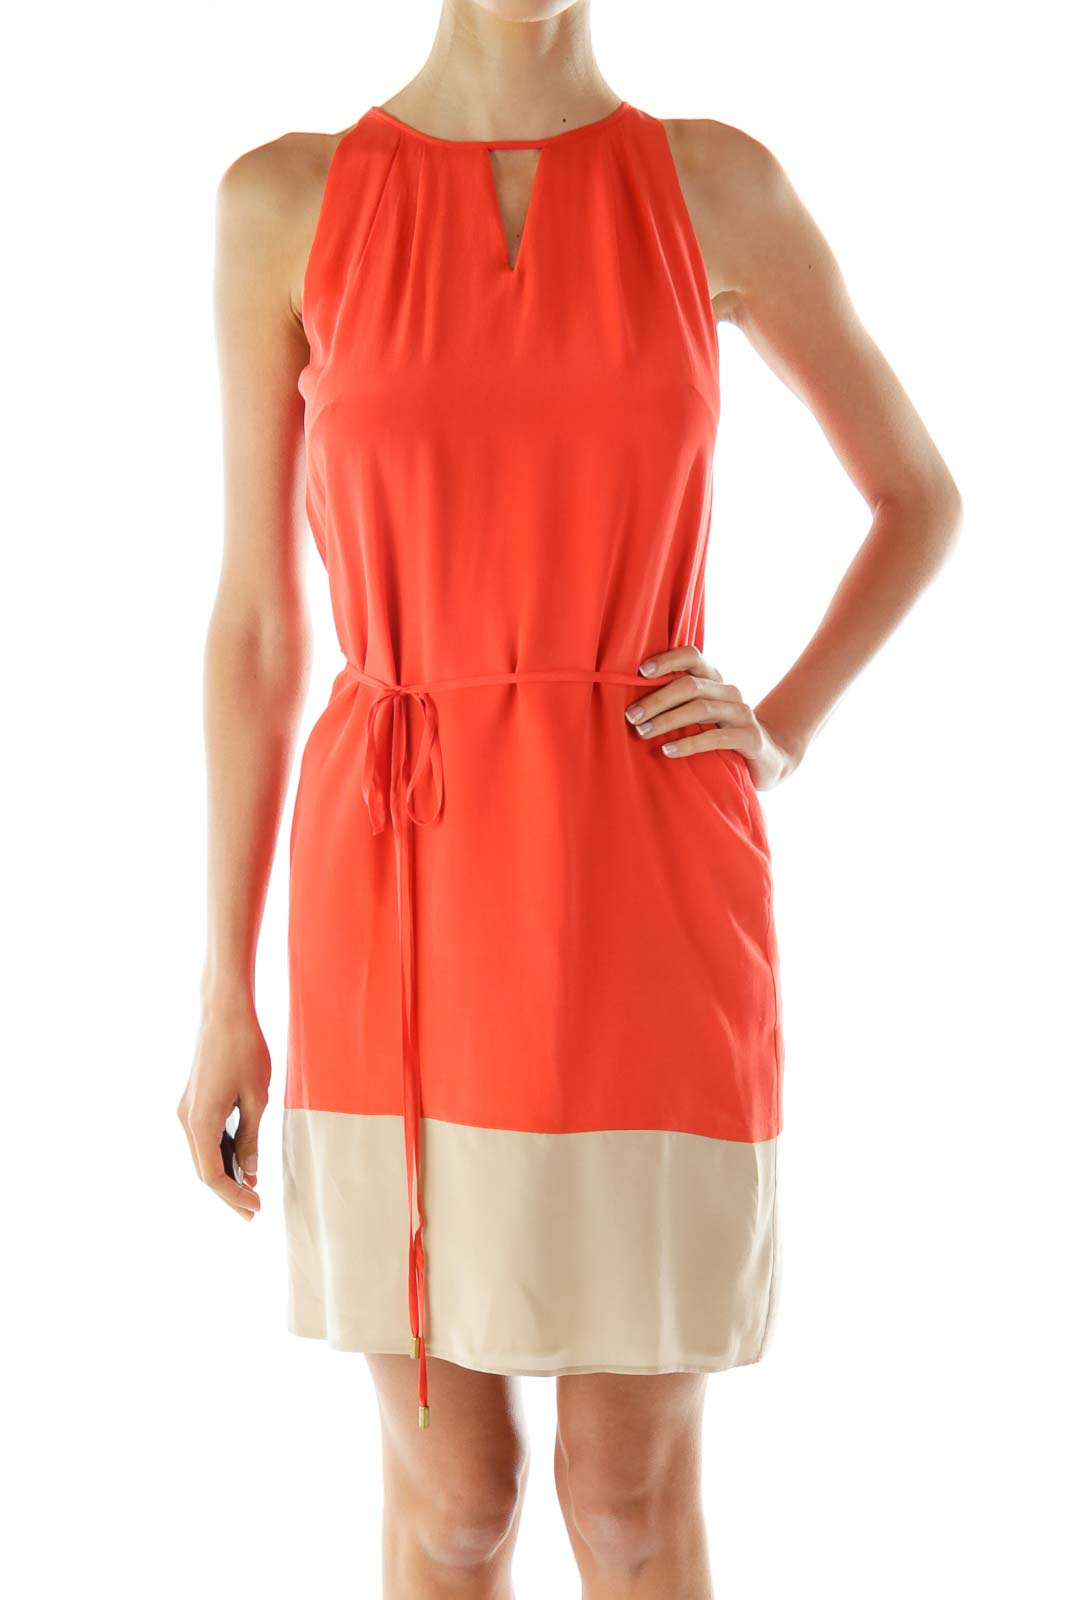 Orange Beige Color Block Day Dress Front